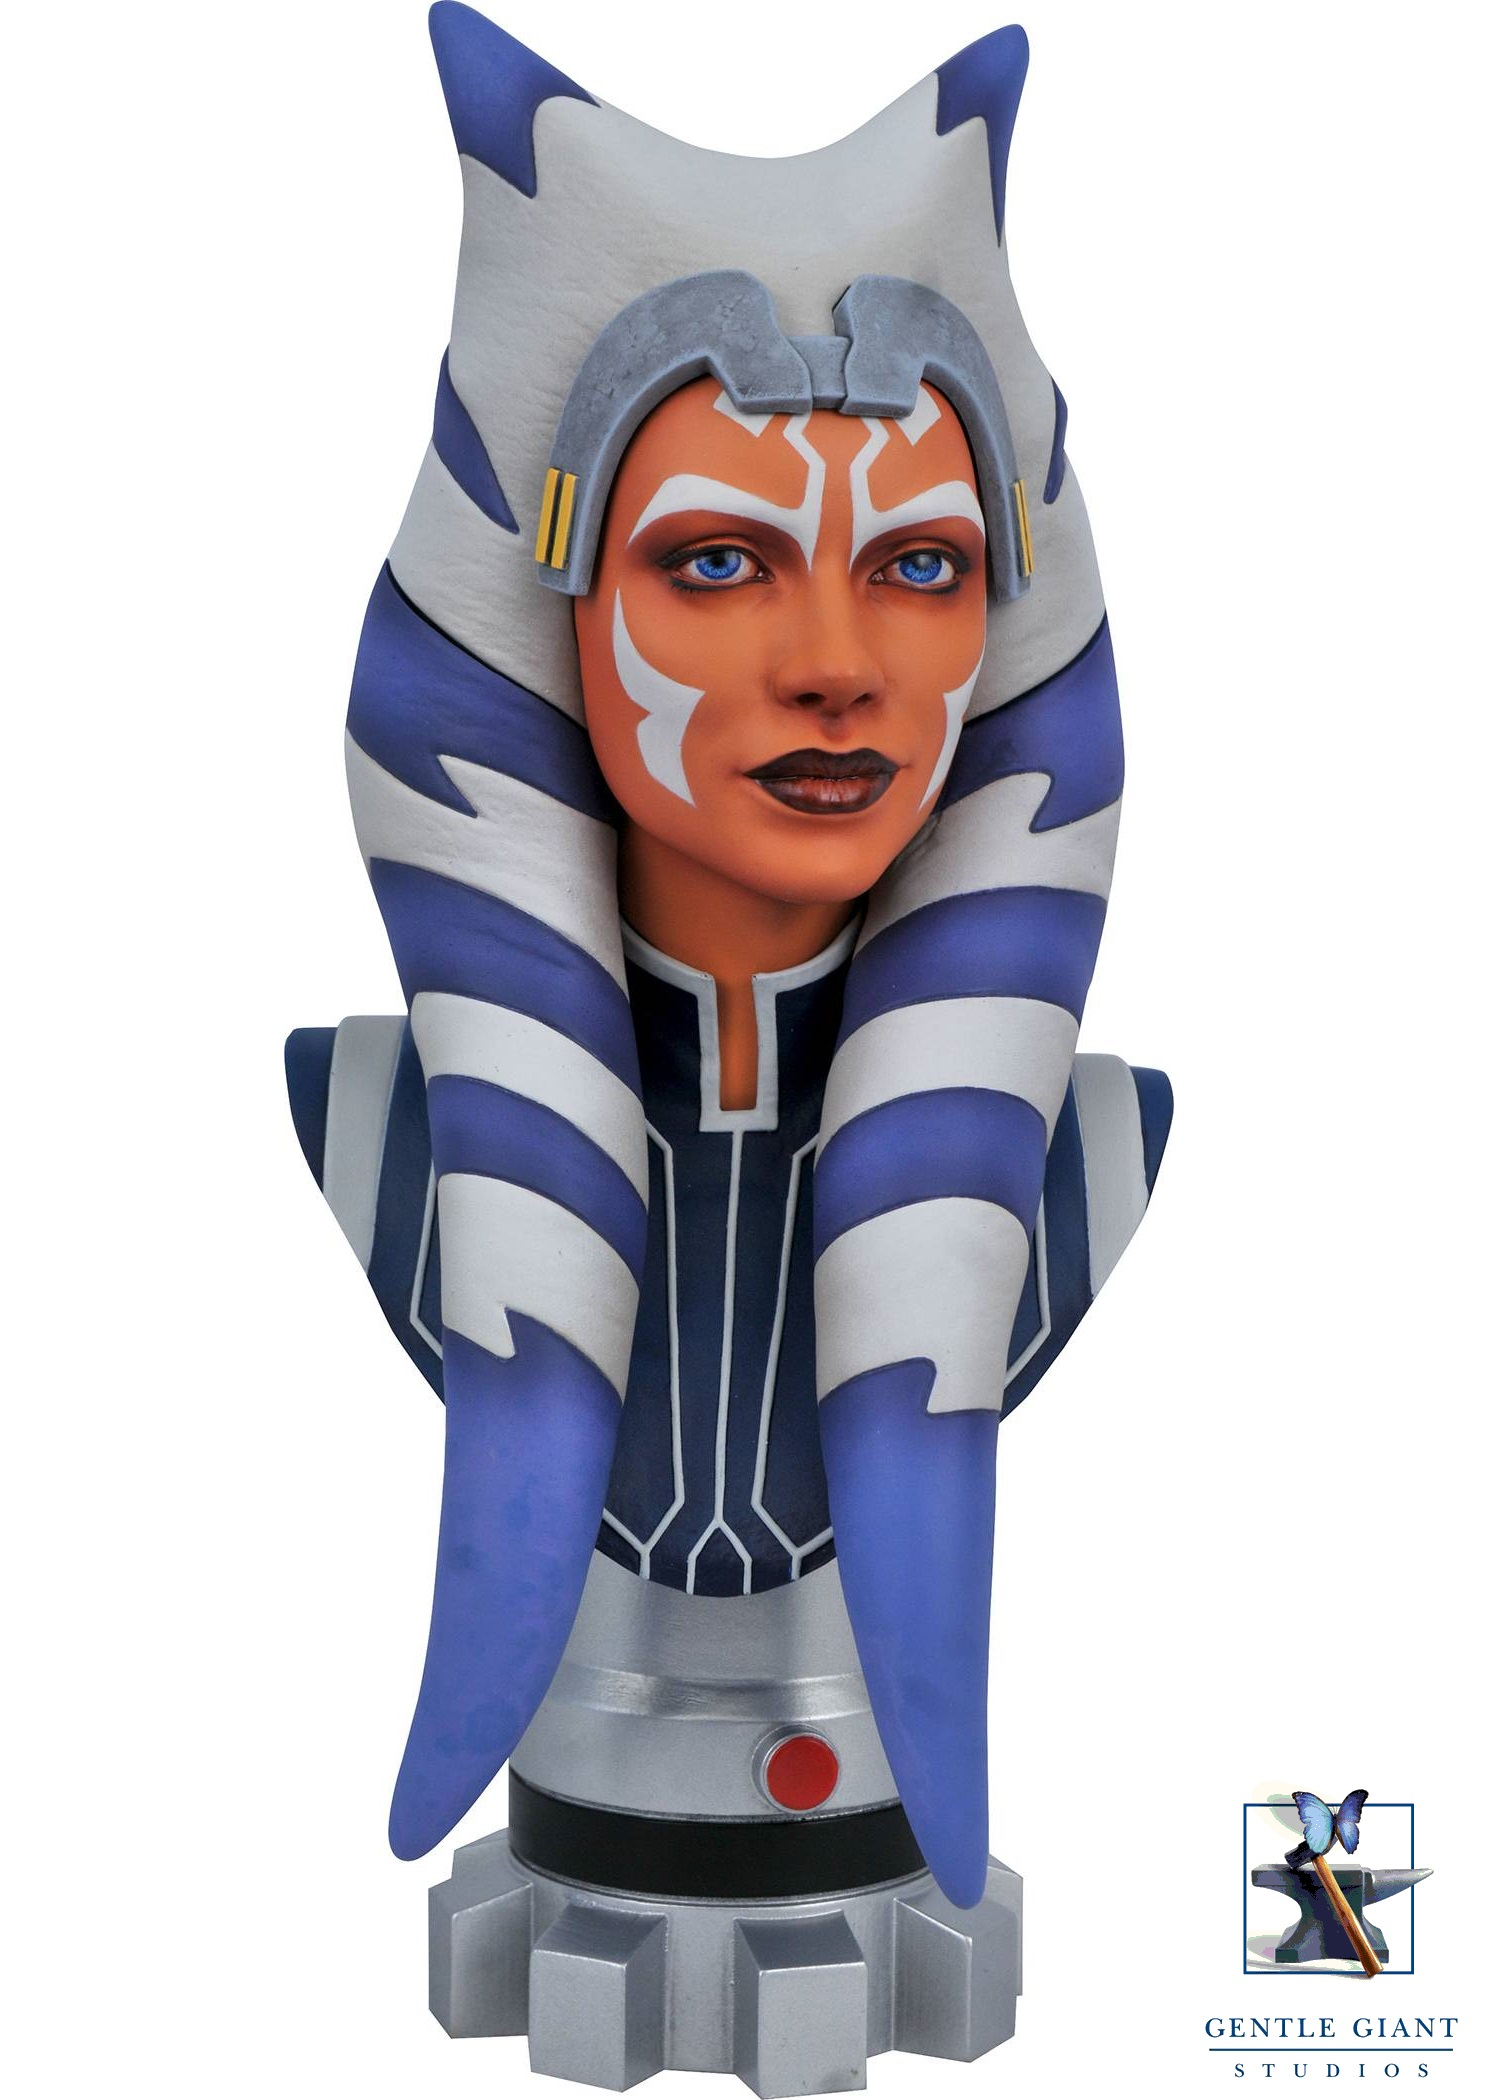 Pre-Order Gentle Giant Star Wars Ahsoka Legends in 3D Bust